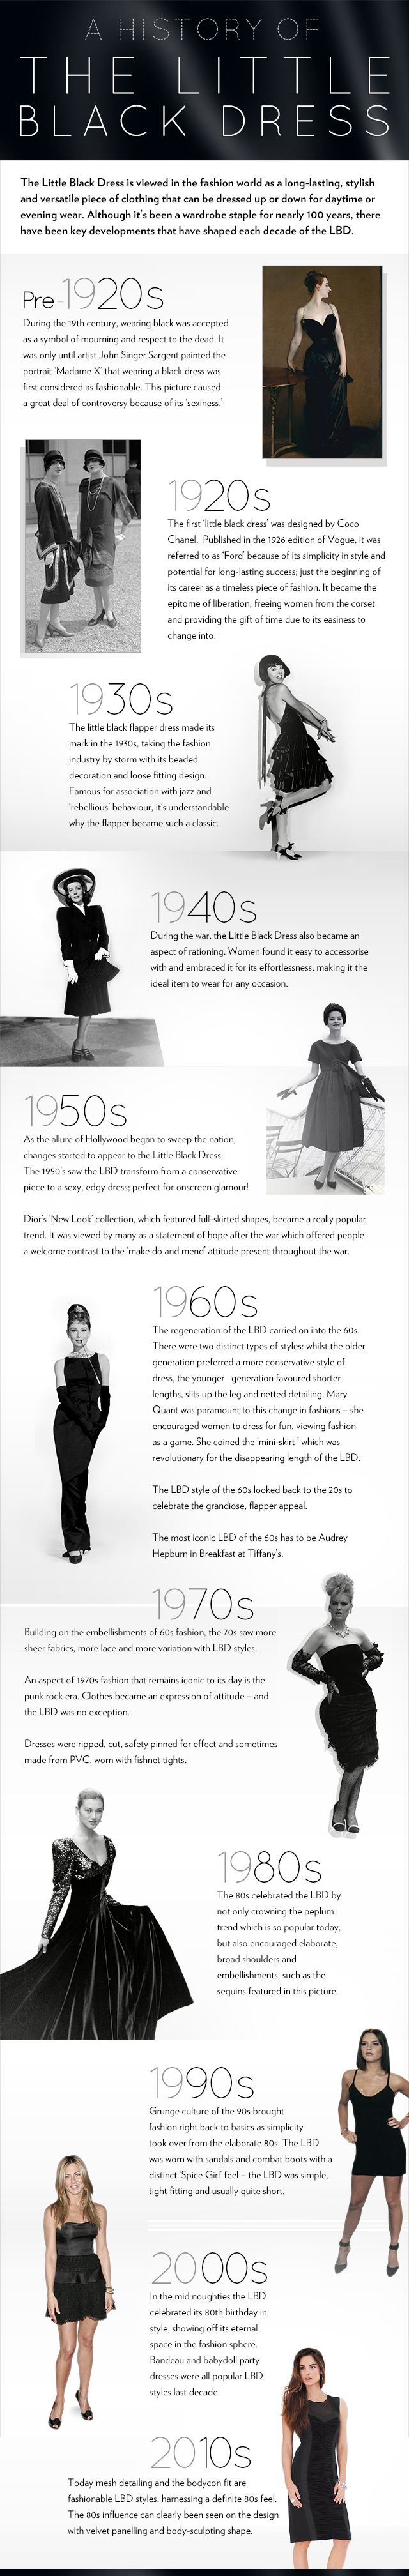 History of the Little Black Dress Infographic